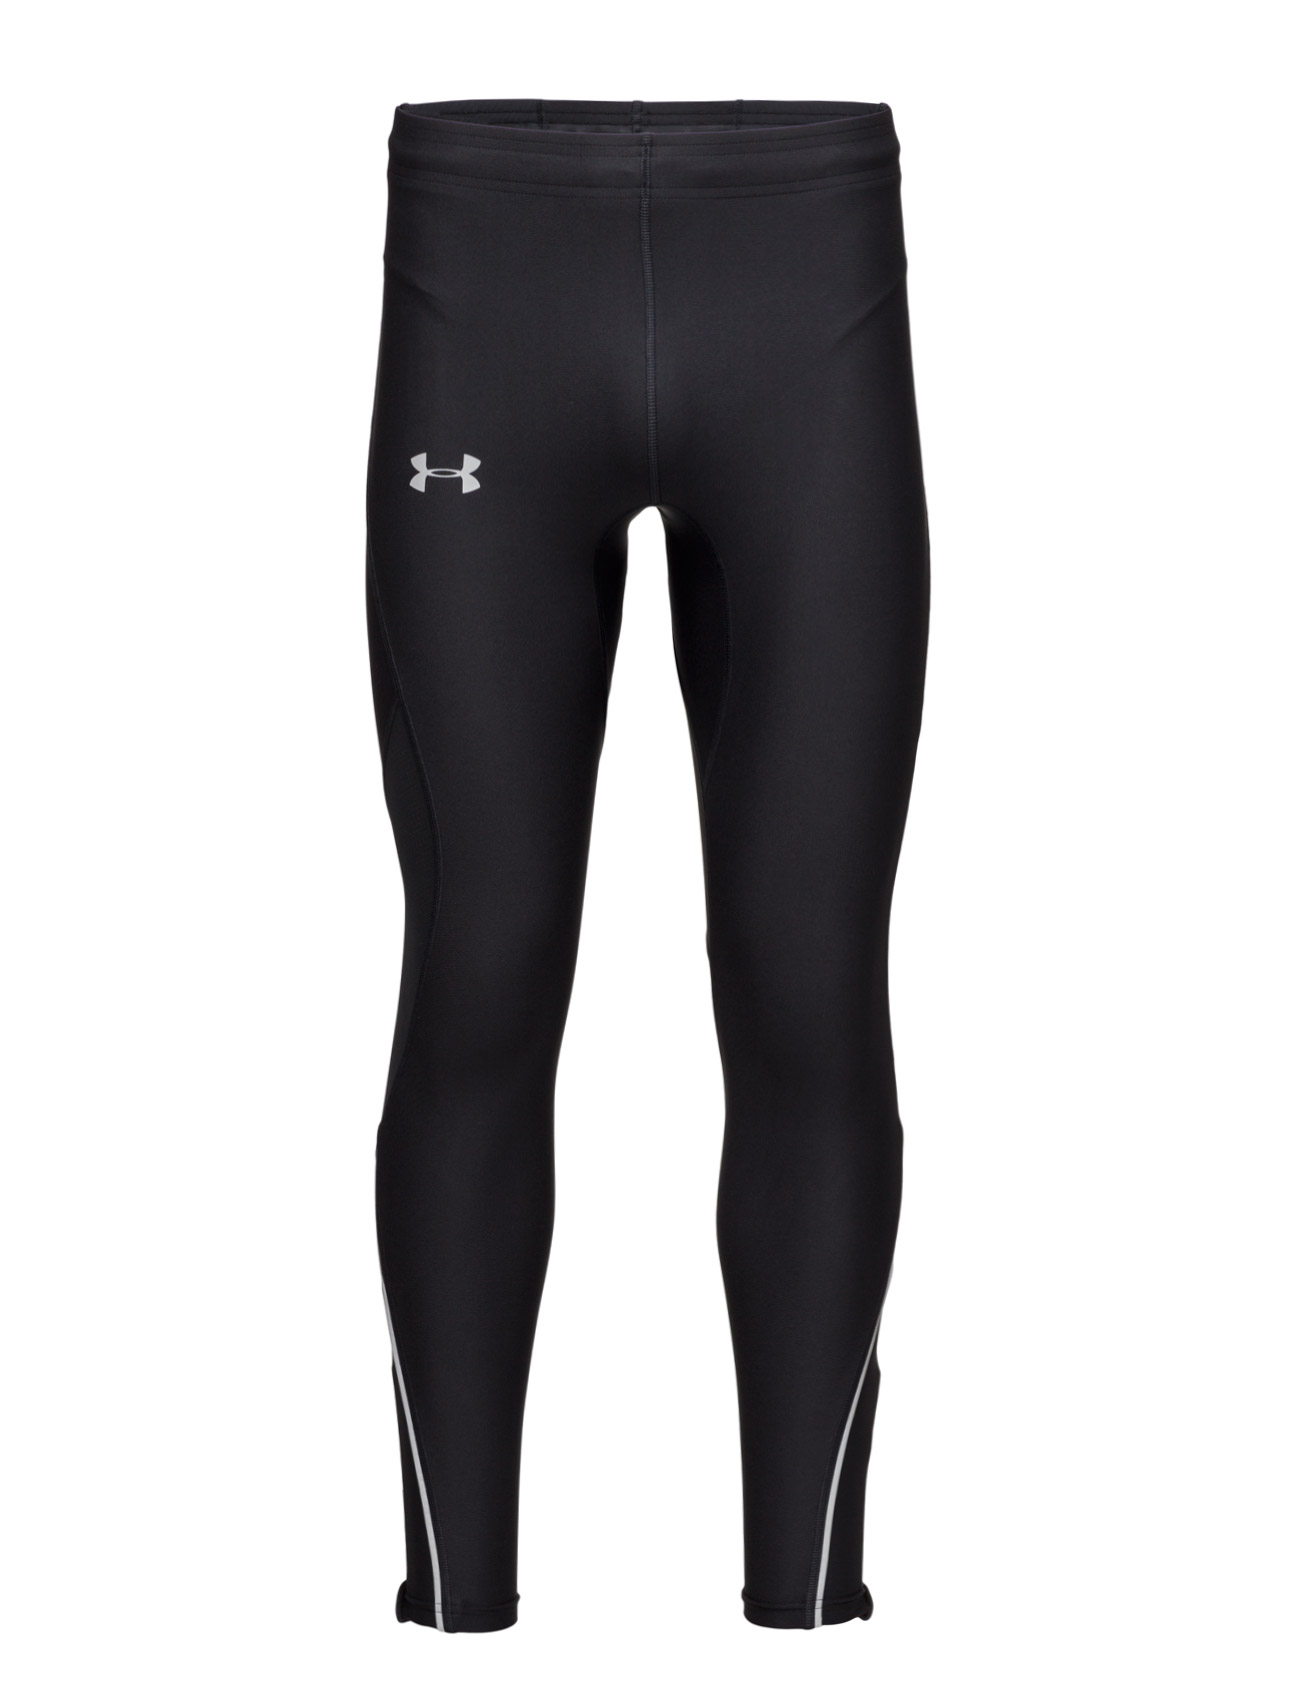 under armour – Ua coolswitch run tight v2 fra boozt.com dk